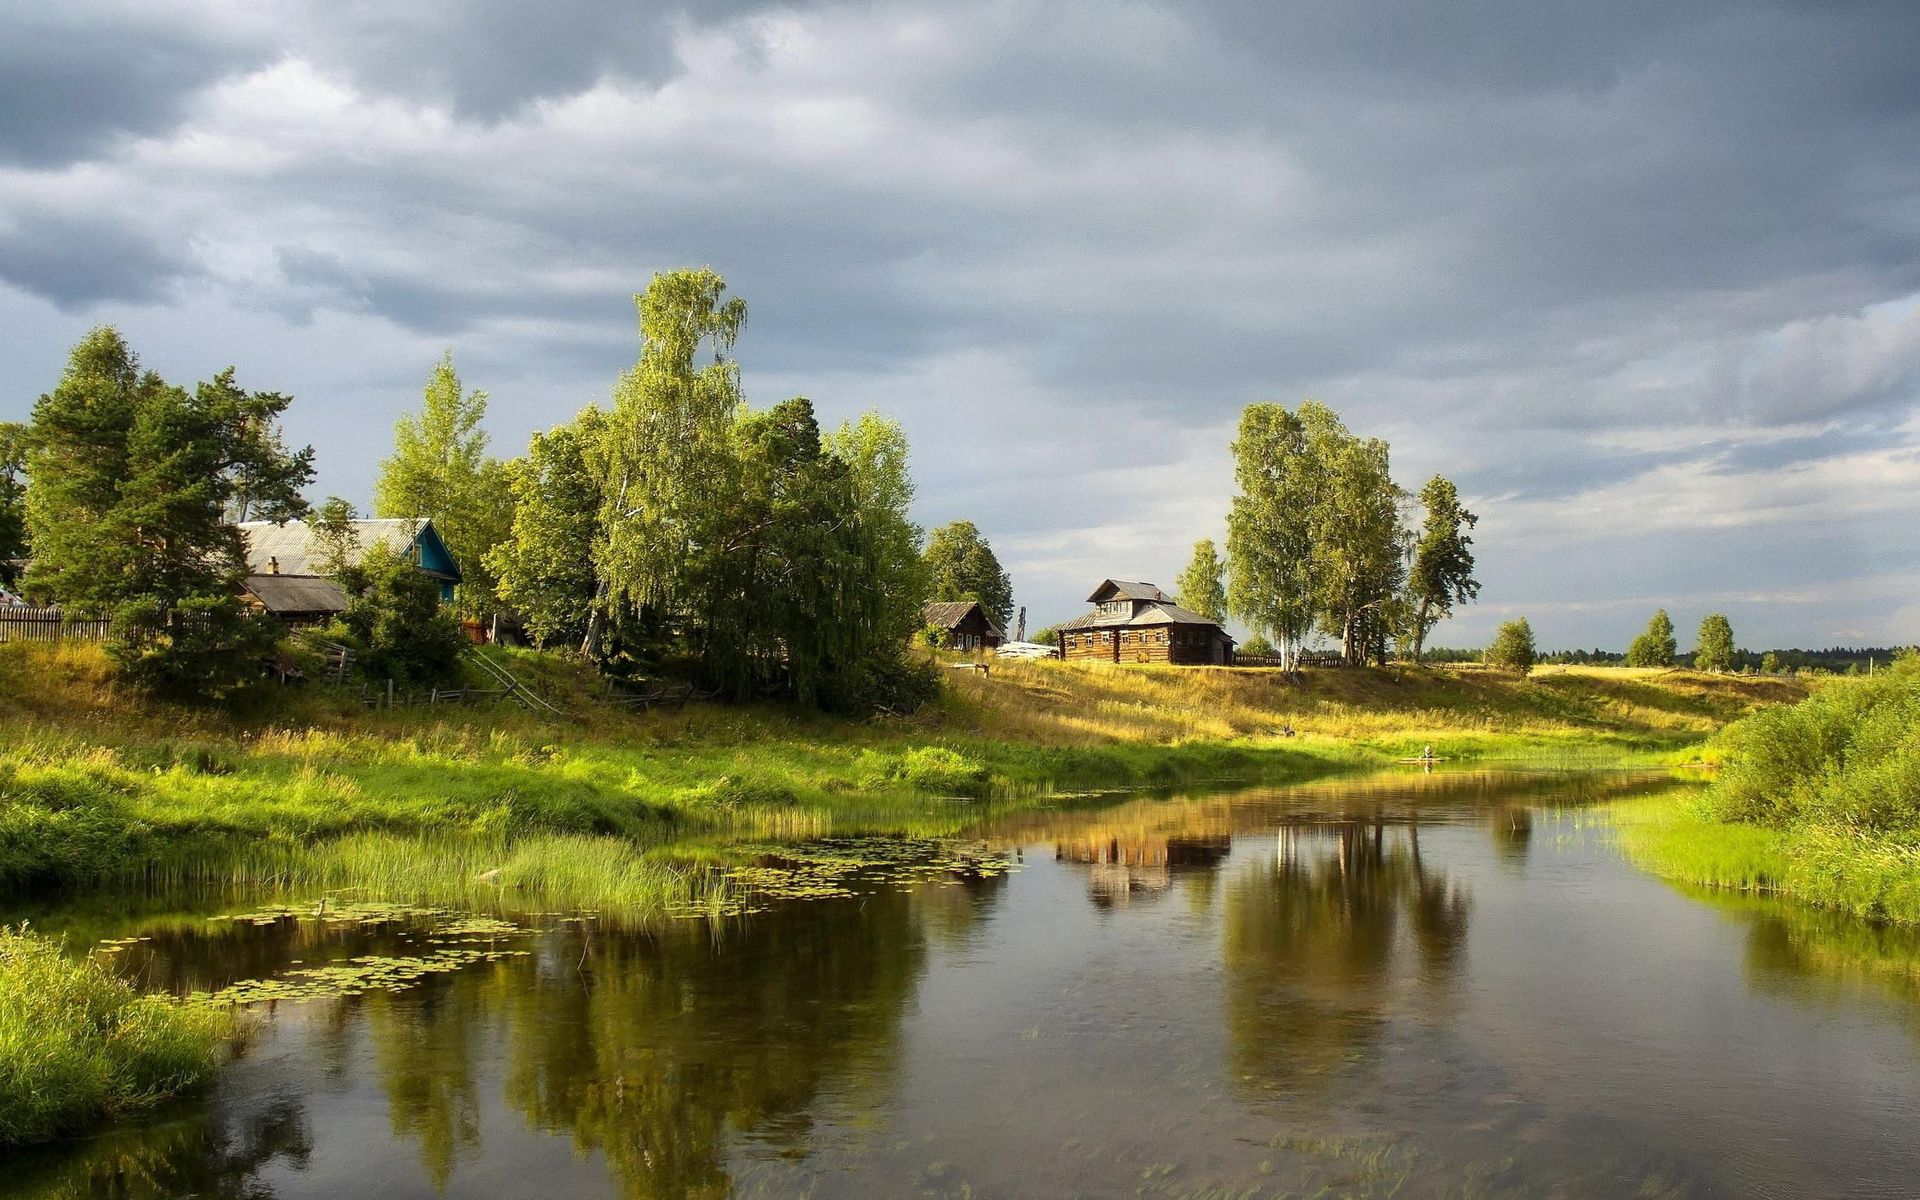 142455 Screensavers and Wallpapers Summer for phone. Download Nature, Rivers, Trees, Sky, Summer, Water Lilies, Shore, Village, Mainly Cloudy, Overcast, Creek, Brook, Shores, Finely pictures for free